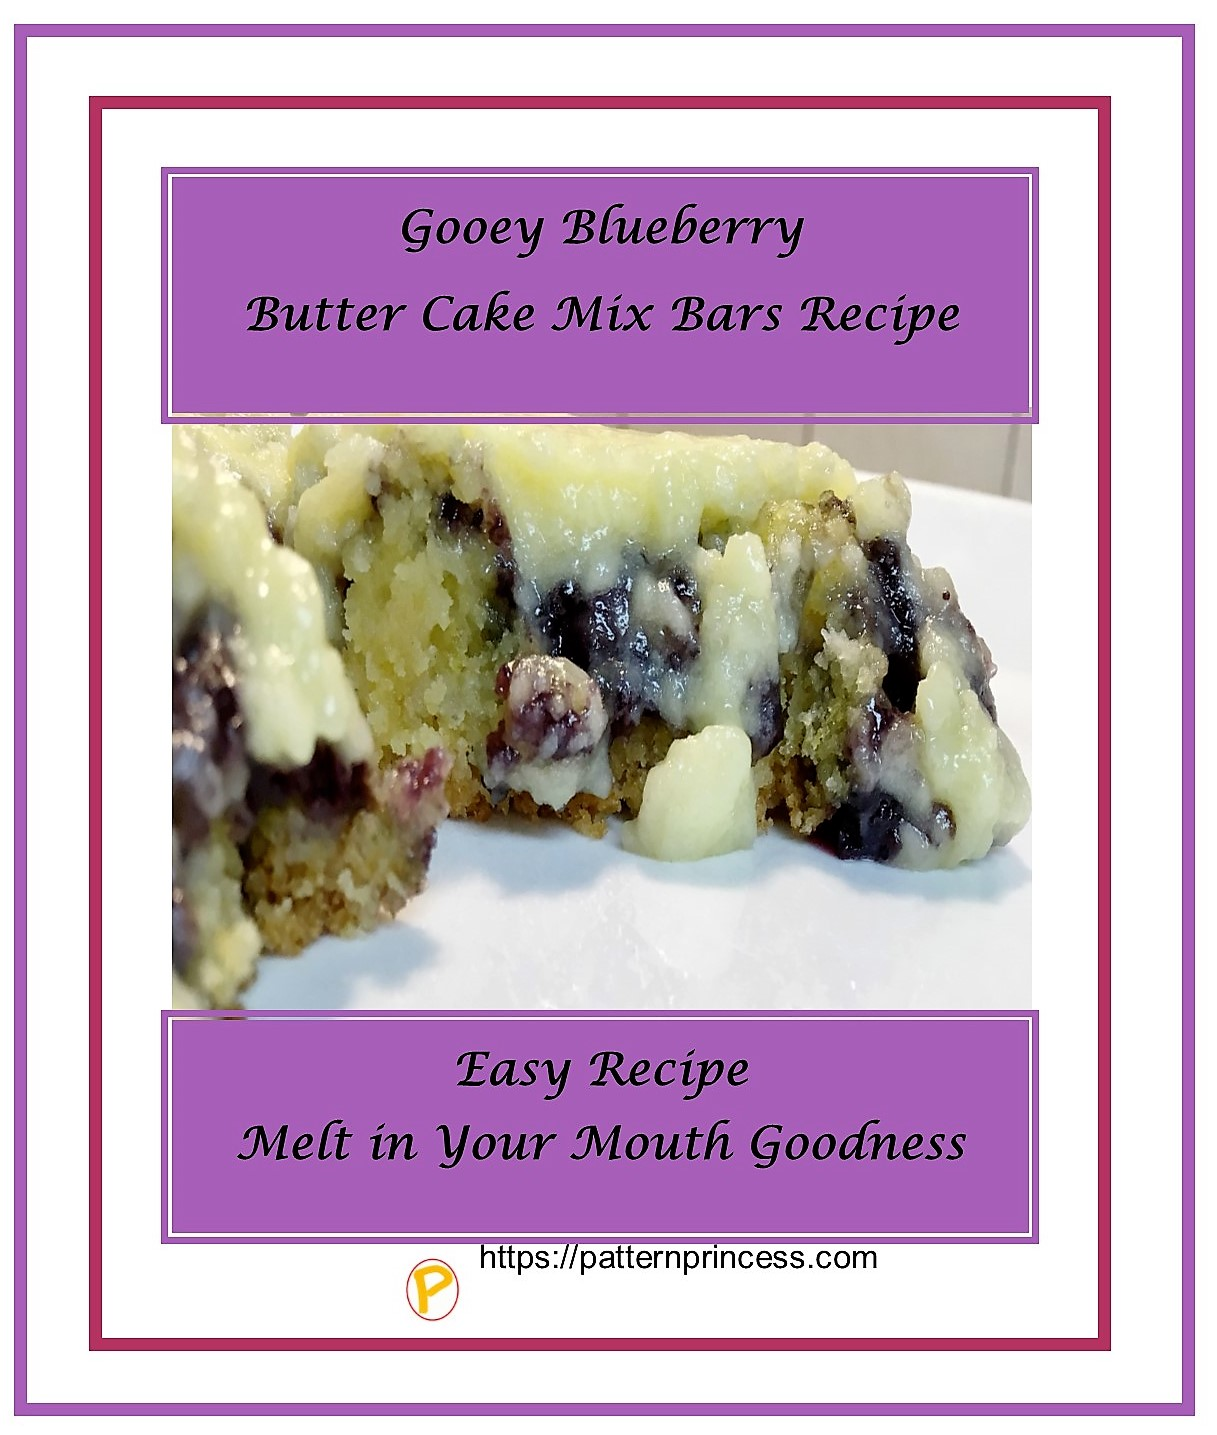 Gooey Blueberry Butter Cake Mix Bars Recipe 1